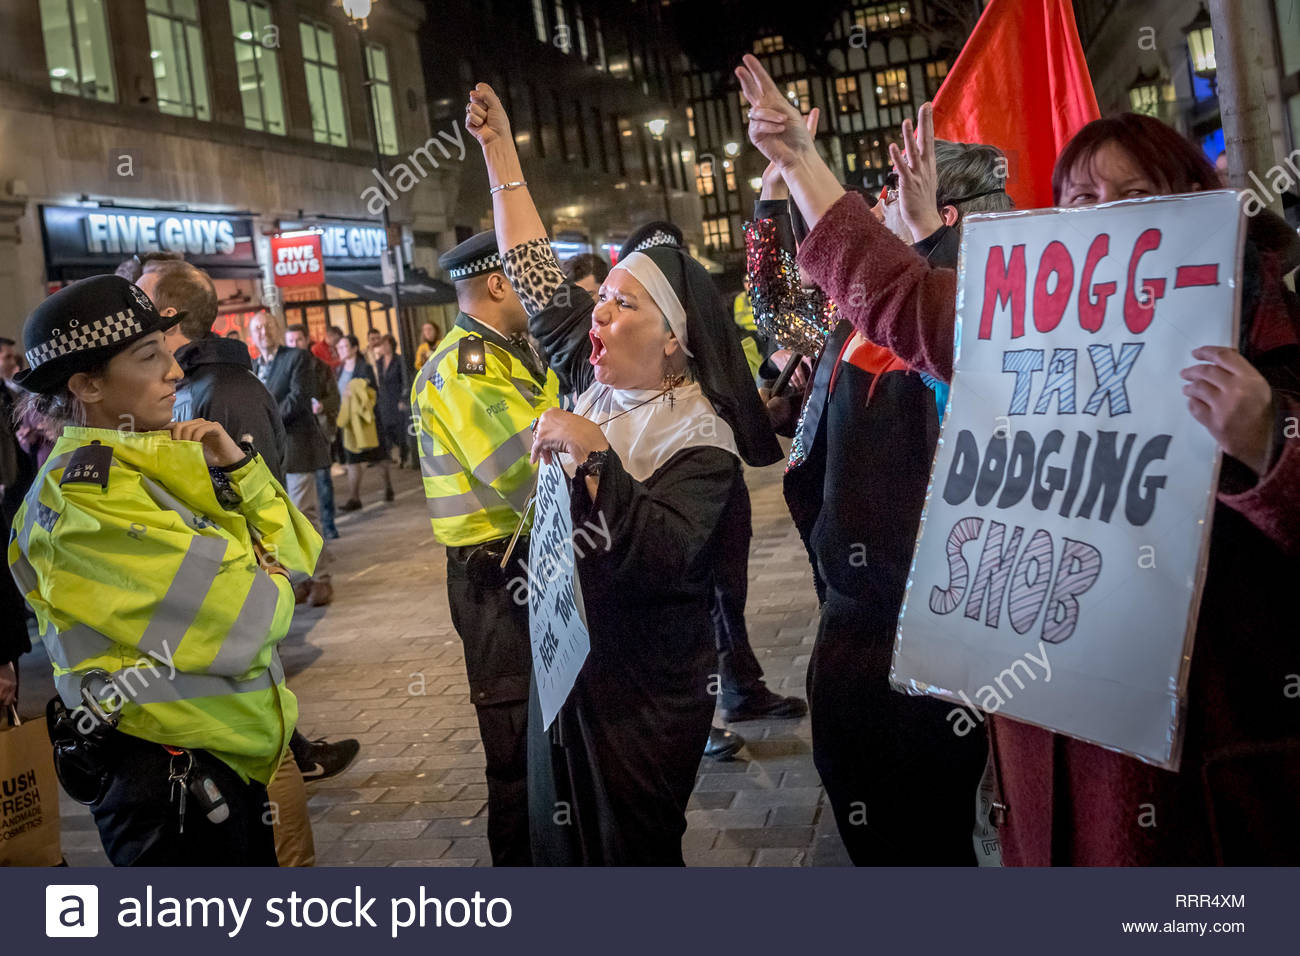 London, UK. 26th February 2019. Protesters from Class War anarchist group hold a lively demonstration outside the London Palladium theatre against the scheduled evening talk with Conservative MP Jacob Rees-Mogg. Class War members including long time anarchist, Ian Bone and Jane Nicholl (dressed as a nun), claim Rees-Mogg is a religious extremist referencing his outspoken views on abortion. Credit: Guy Corbishley Credit: Guy Corbishley/Alamy Live News - Stock Image